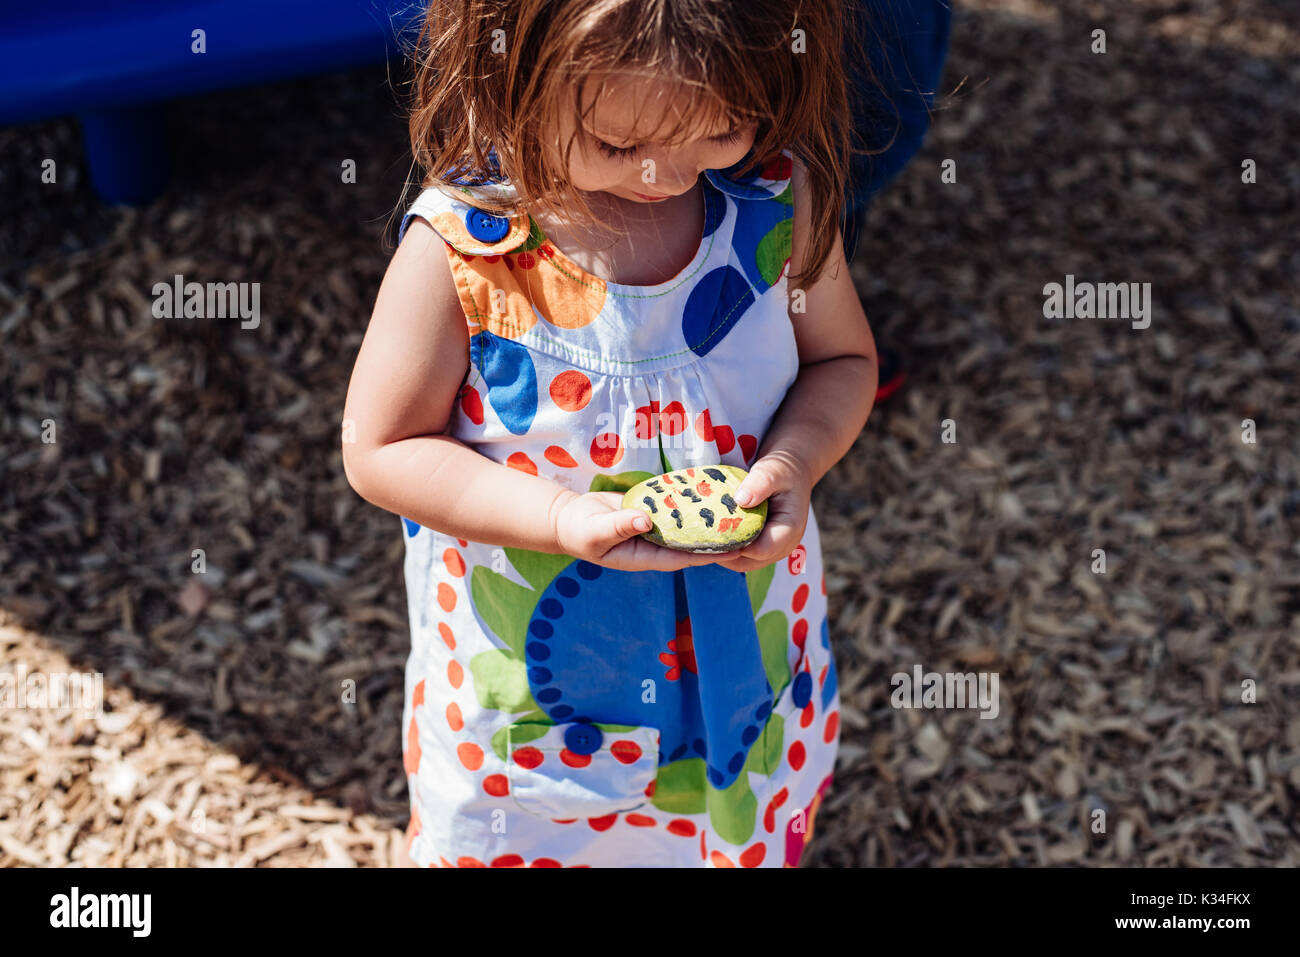 A little girl looking at a painted rock she is holding - Stock Image